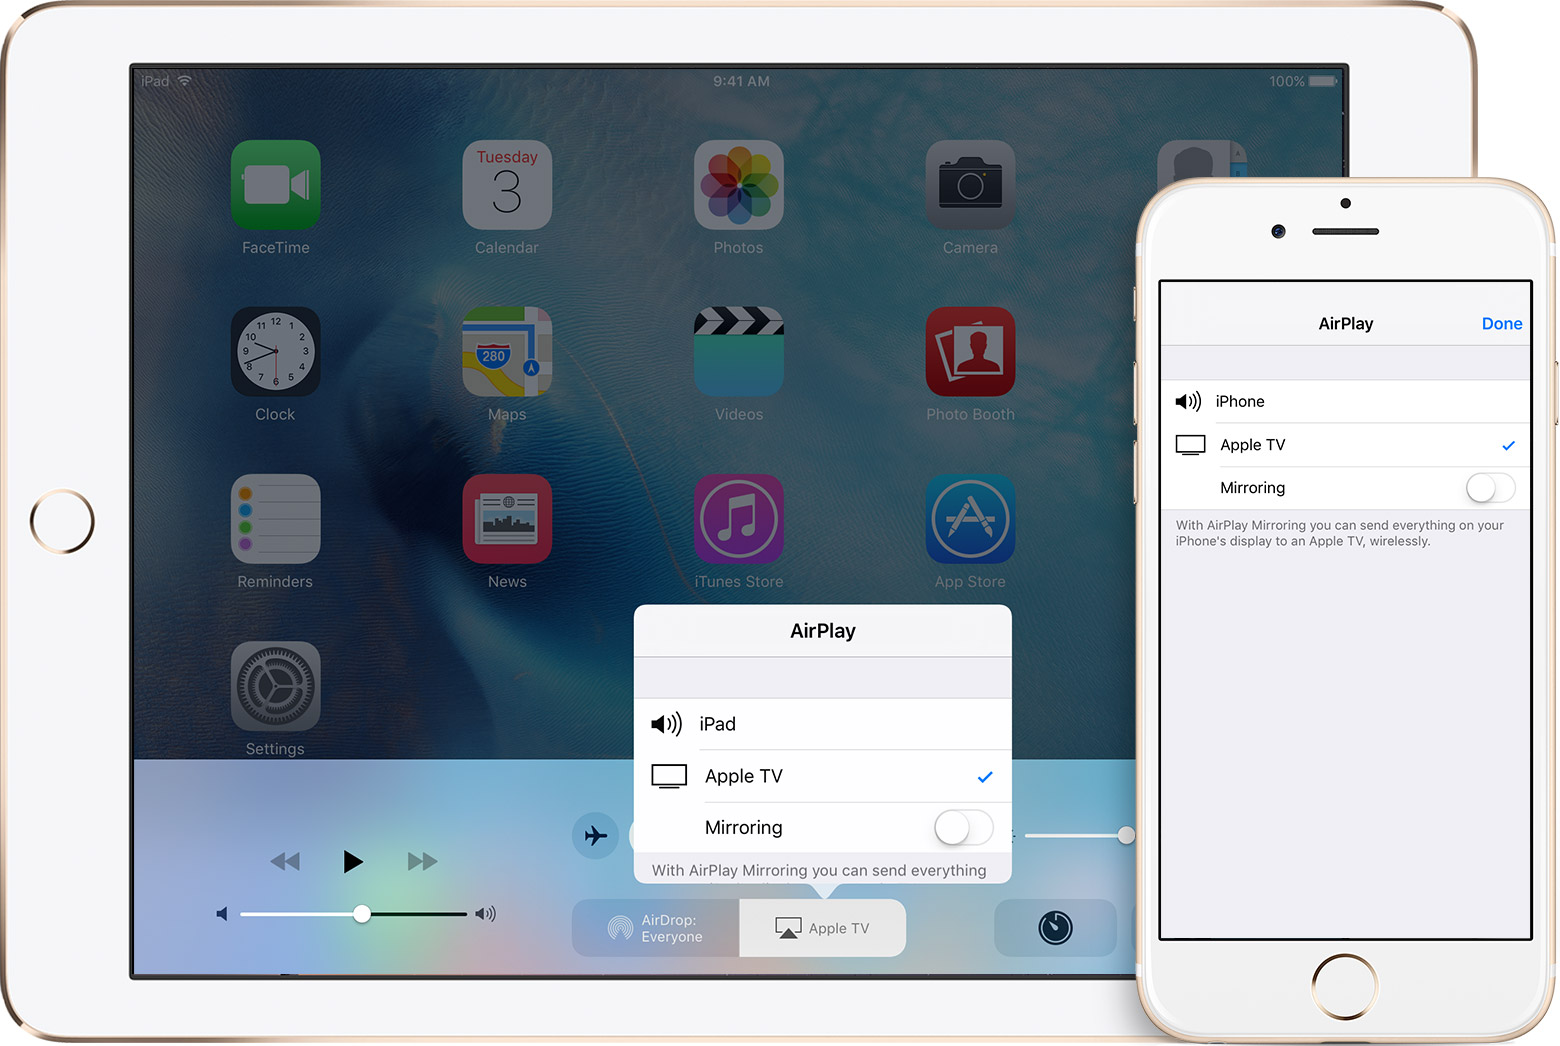 ios9 ipad iphone appletv mirror menu